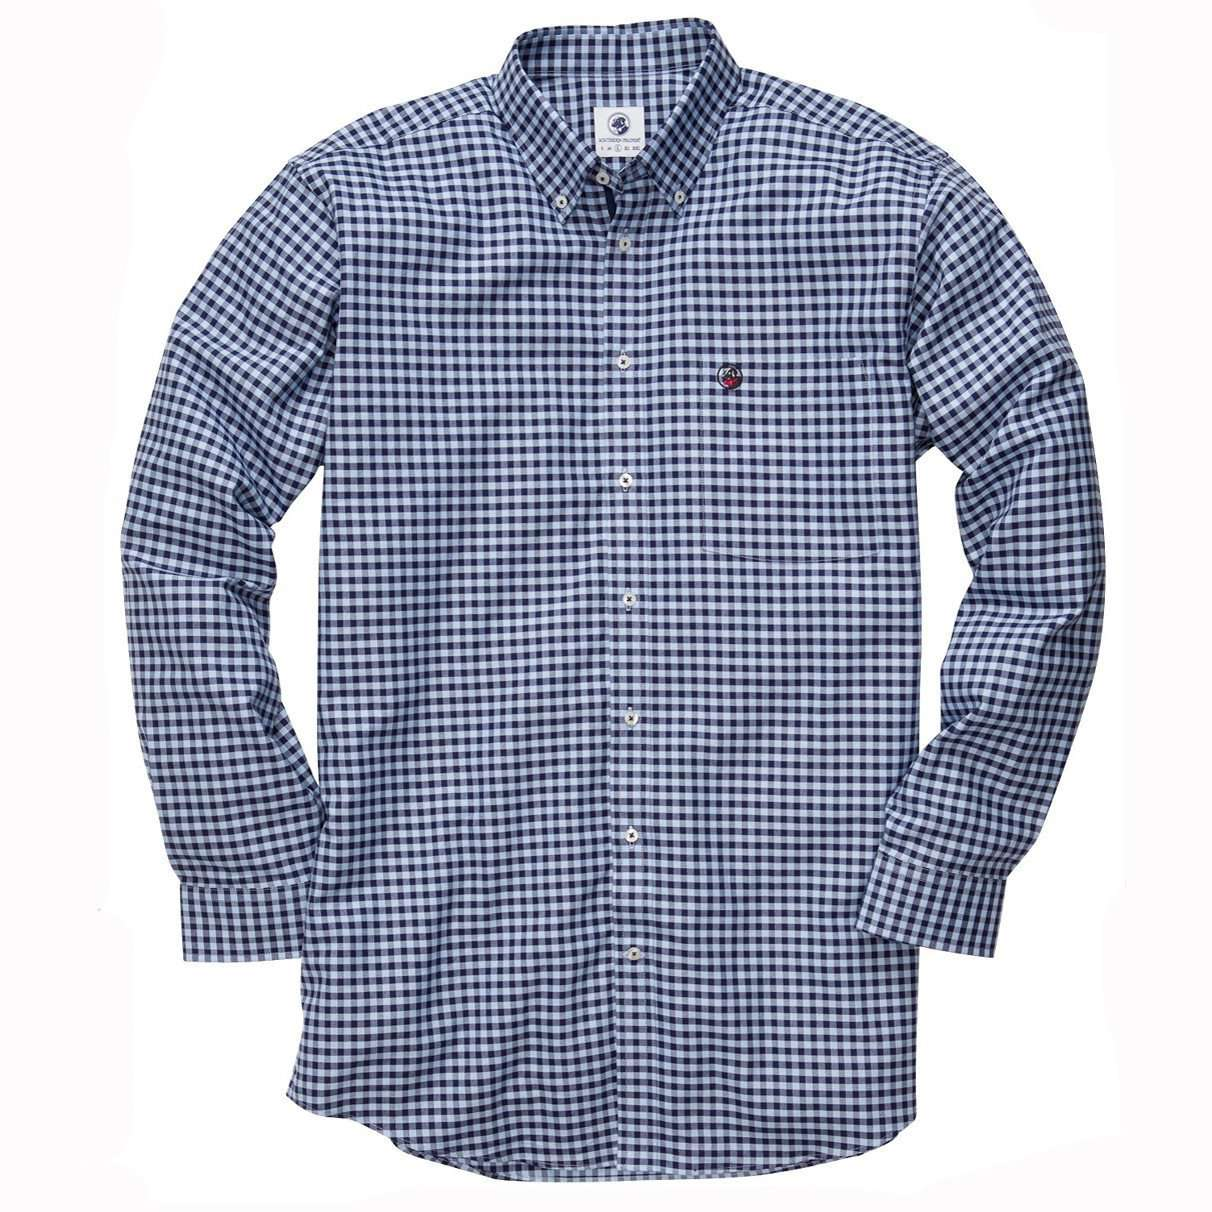 Men's Button Downs - The Navy Check Southern Shirt By Southern Proper